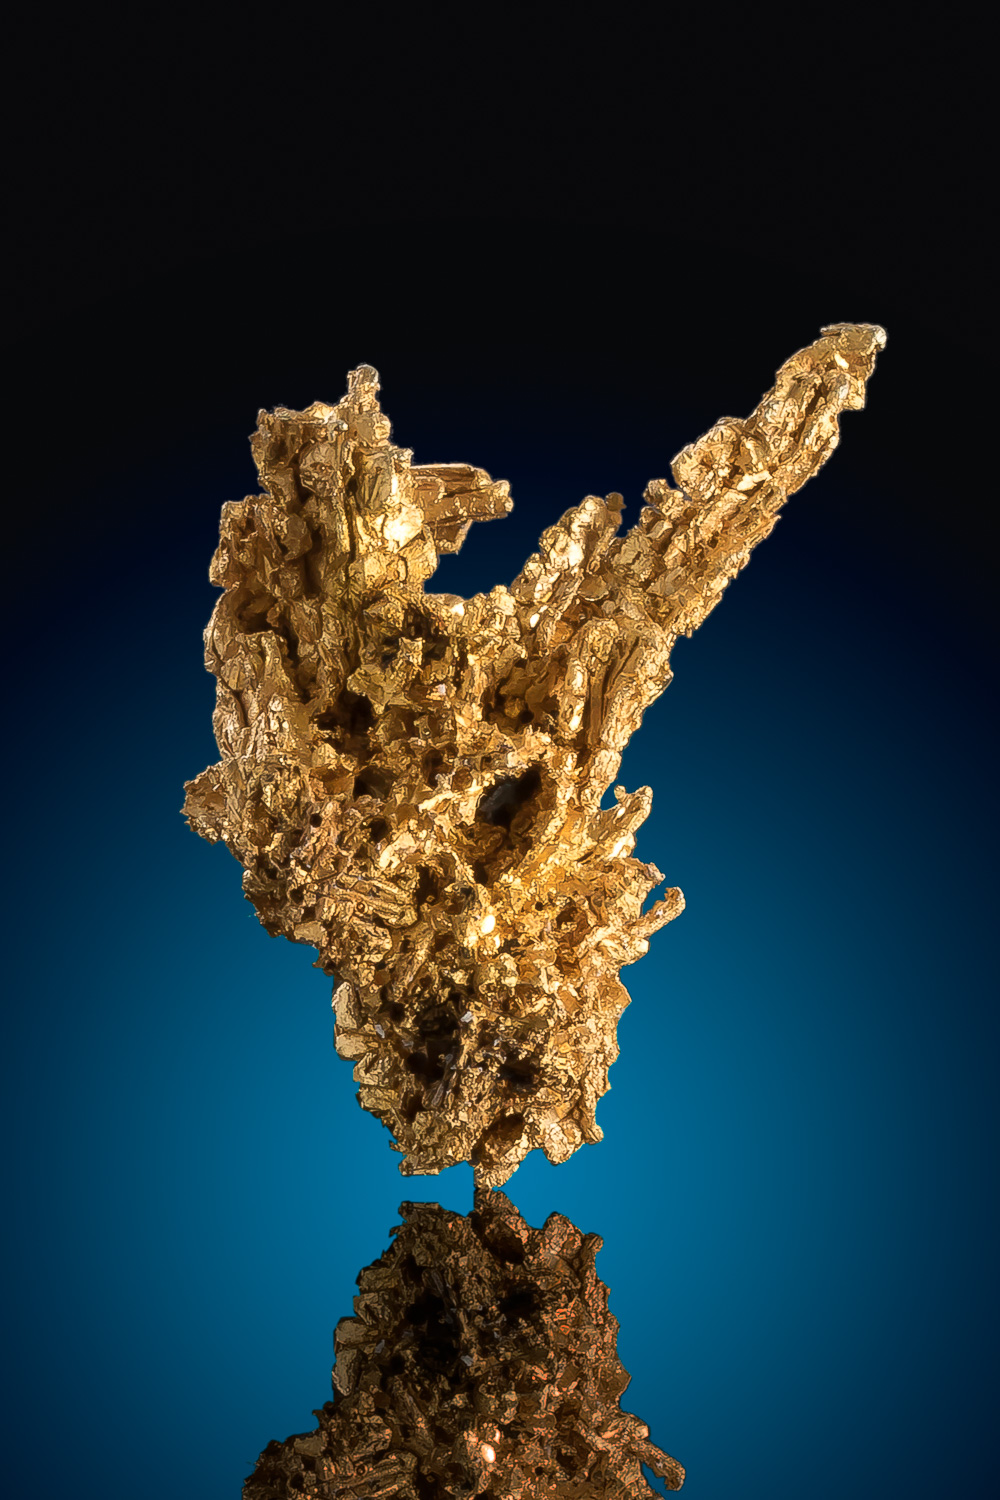 Jagged Intricate Gold Specimen from Round Mountain